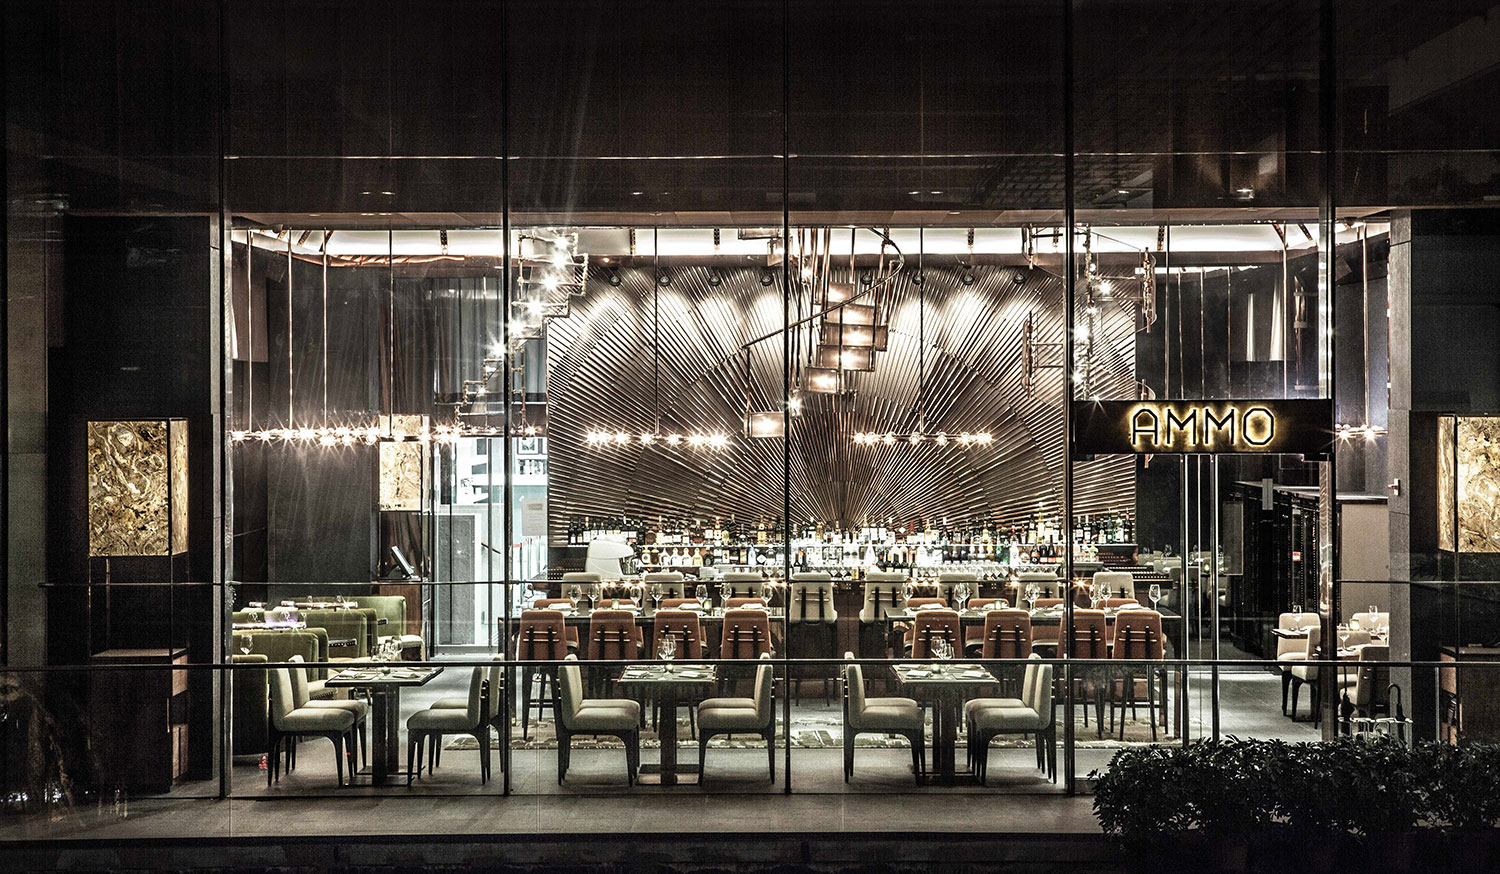 Ammo Bar + Restaurant, Hong Kong by WANG | Yellowtrace.